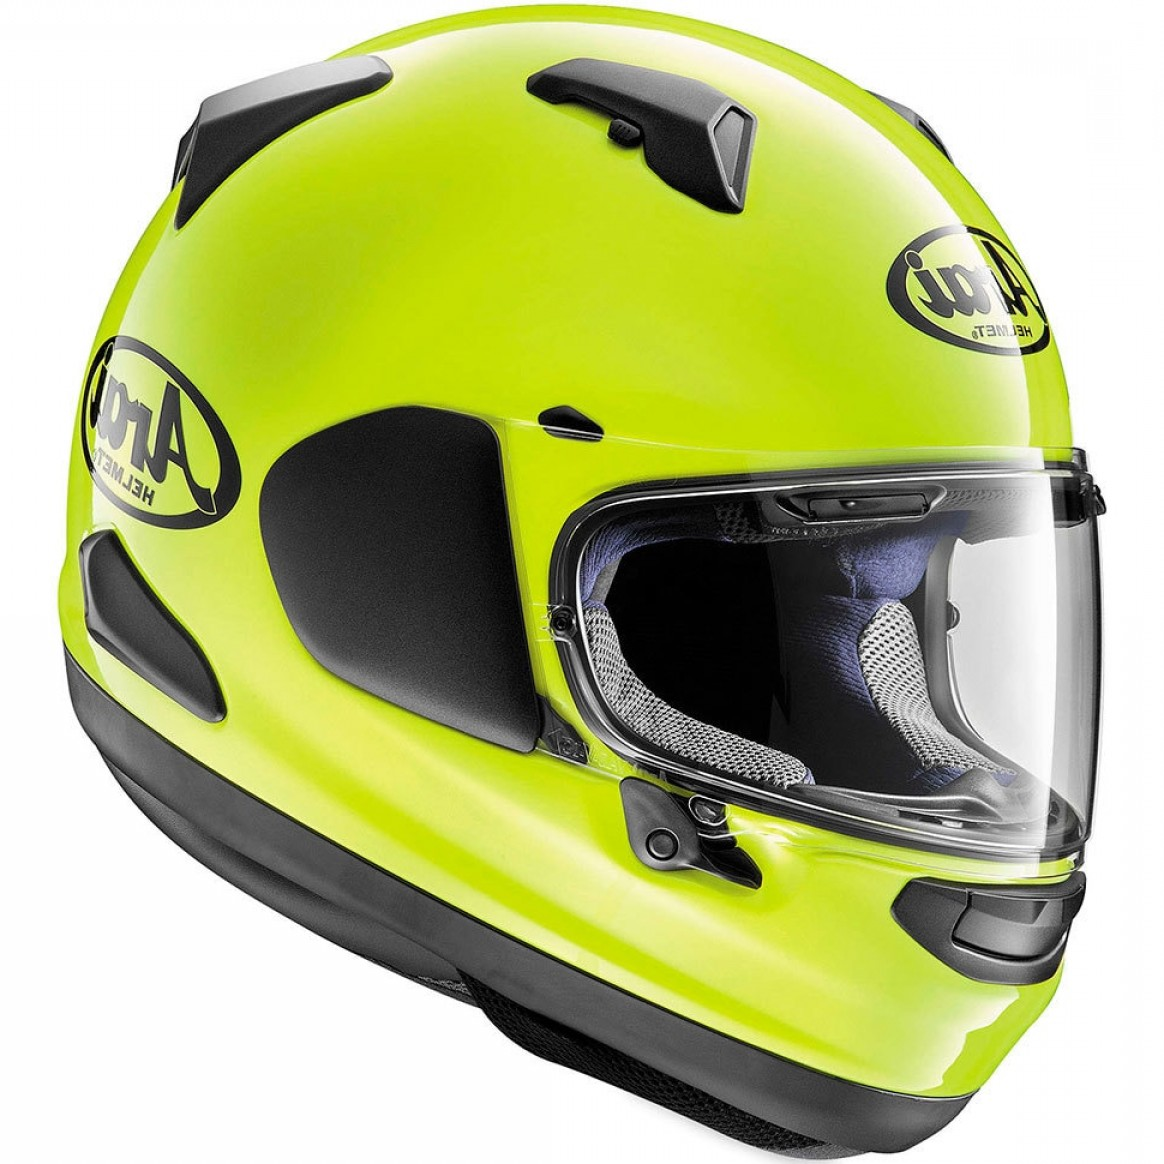 Arai Vector 2 Model: Arai Signet X Helmet Fluorescent Yellow